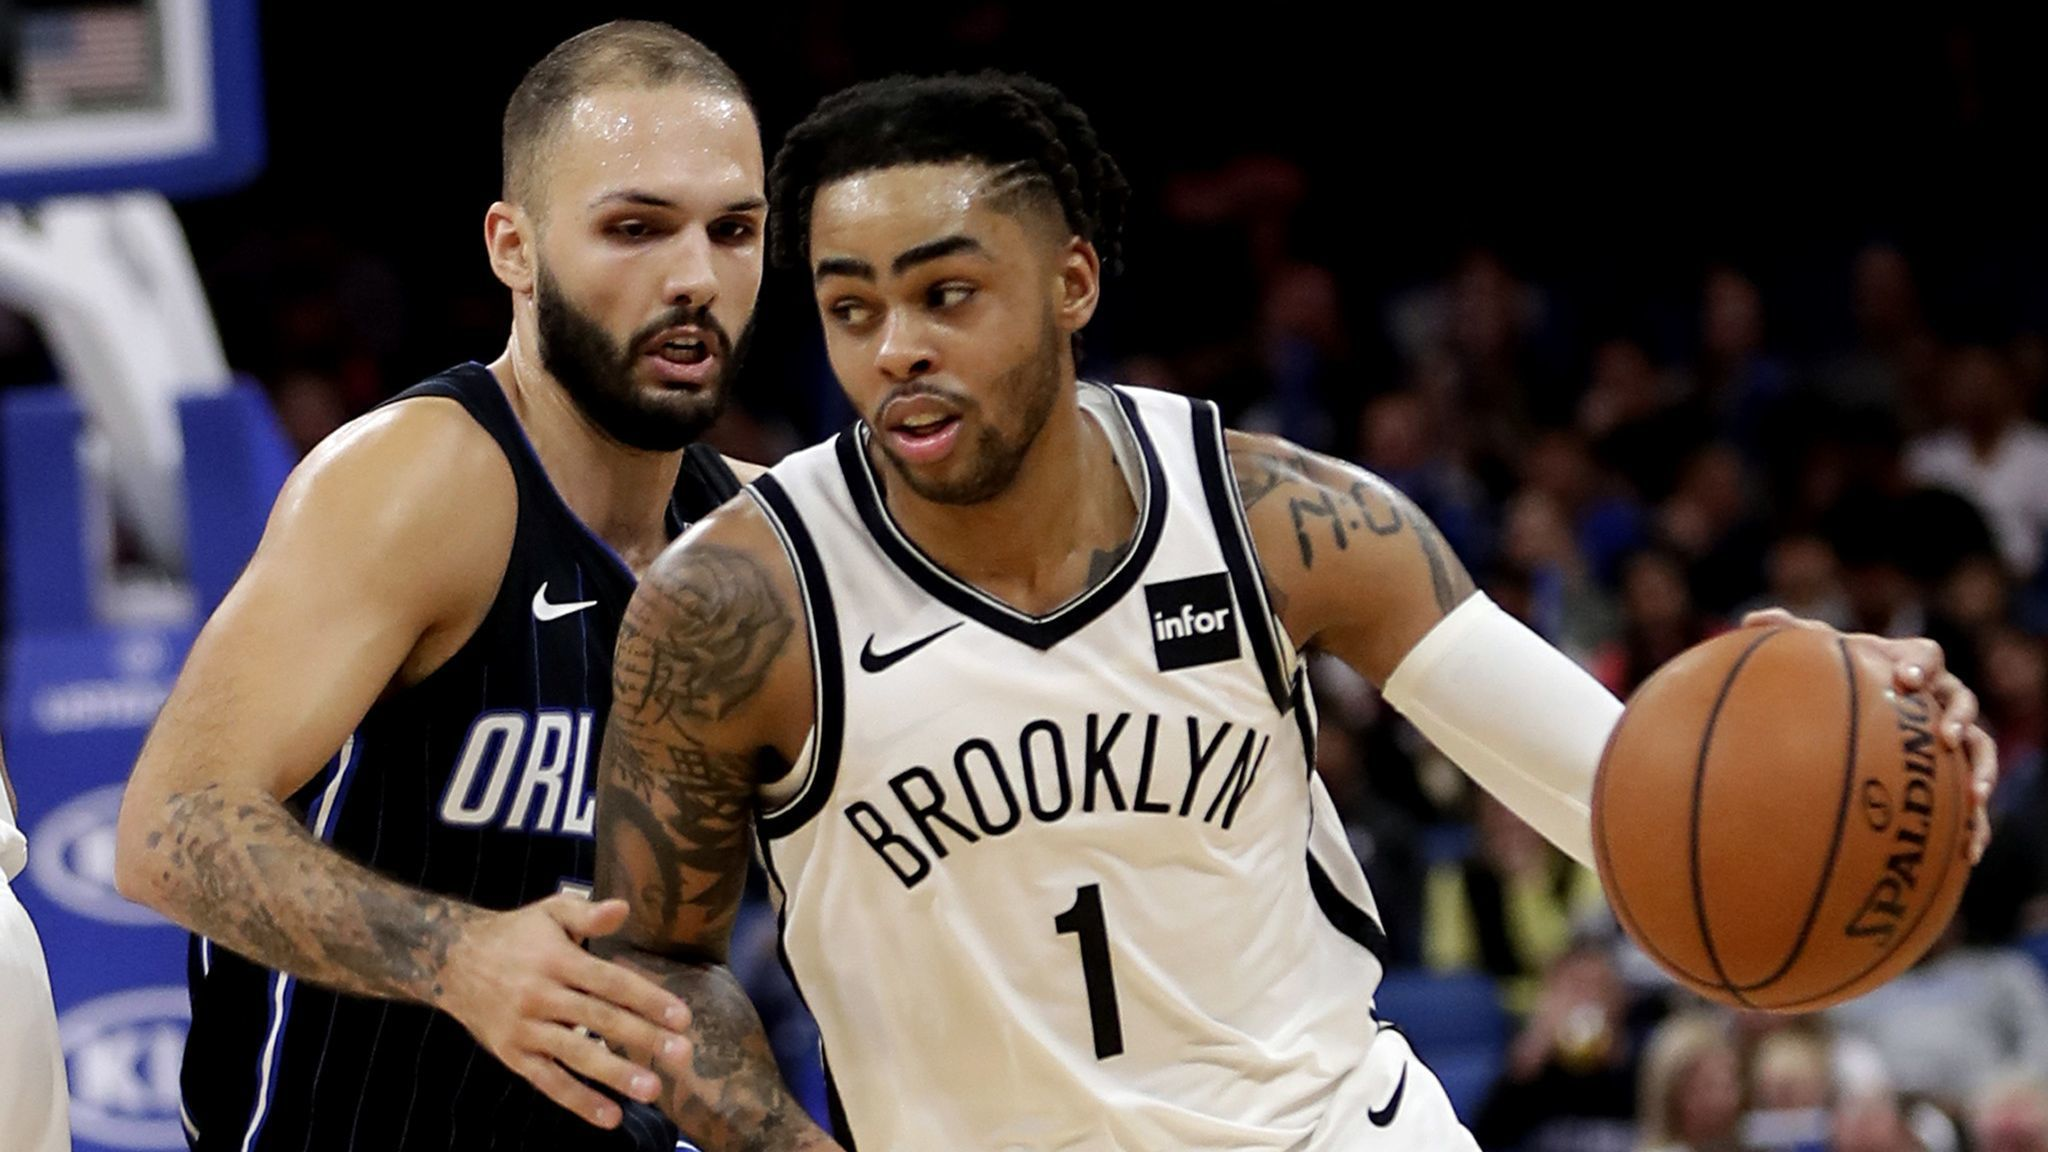 NBA Fastbreak: D'Angelo Russell, former future of Lakers, lives up to hype with Nets